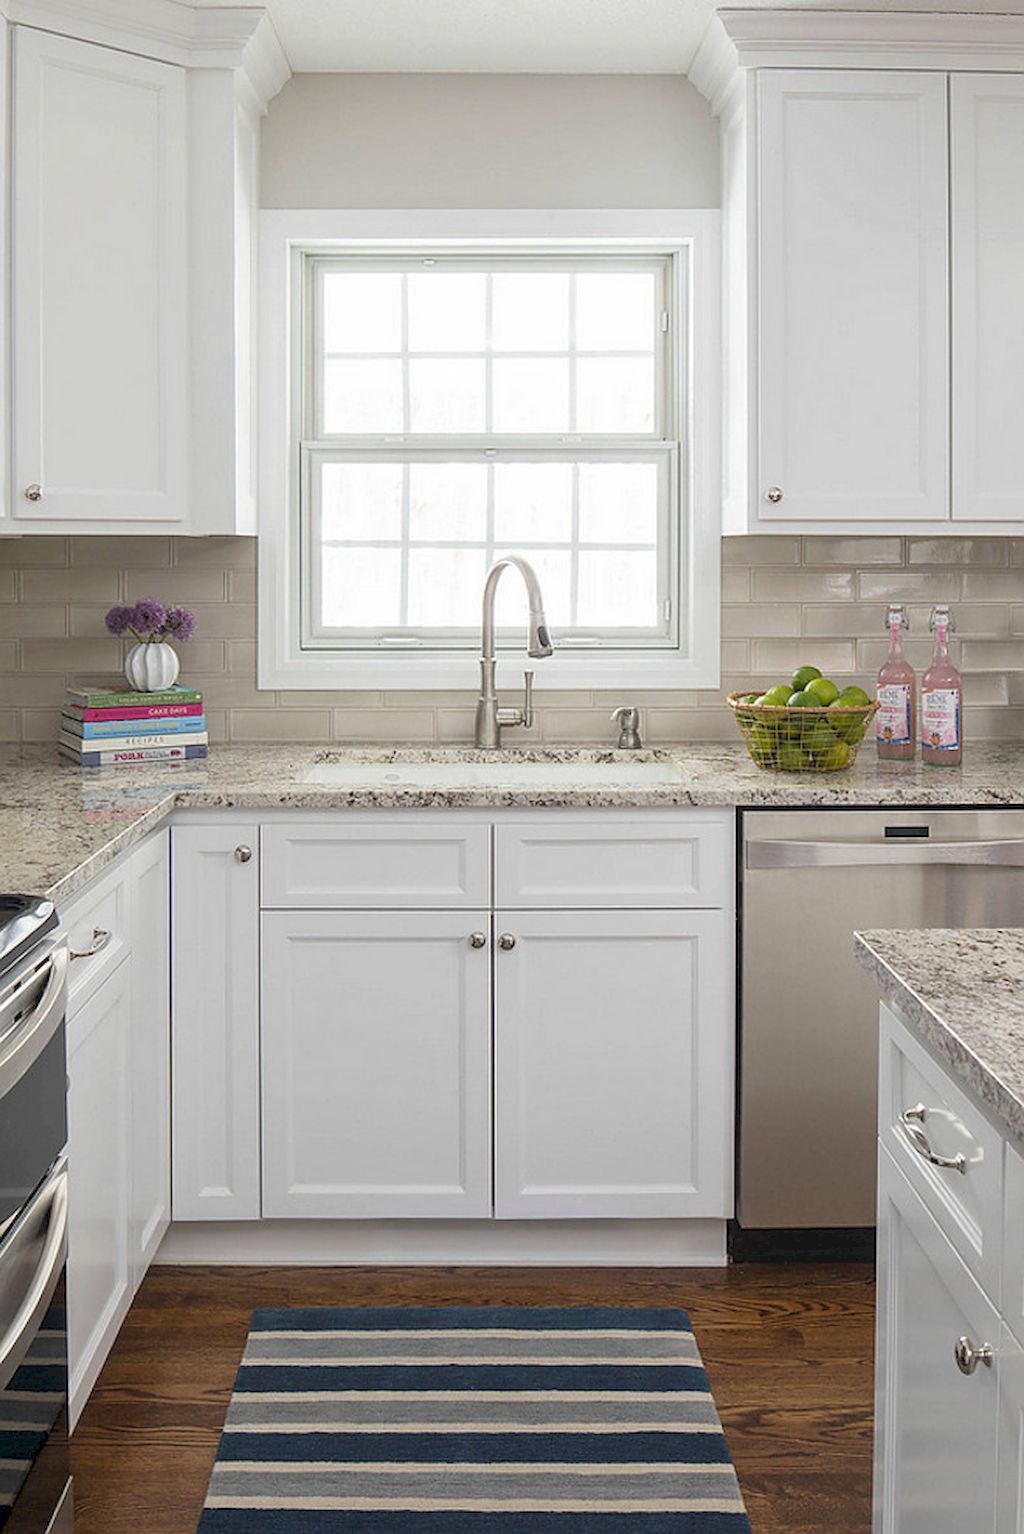 90 Beautiful Kitchen Remodel Backsplash Tile Ideas | Cocinas y ...